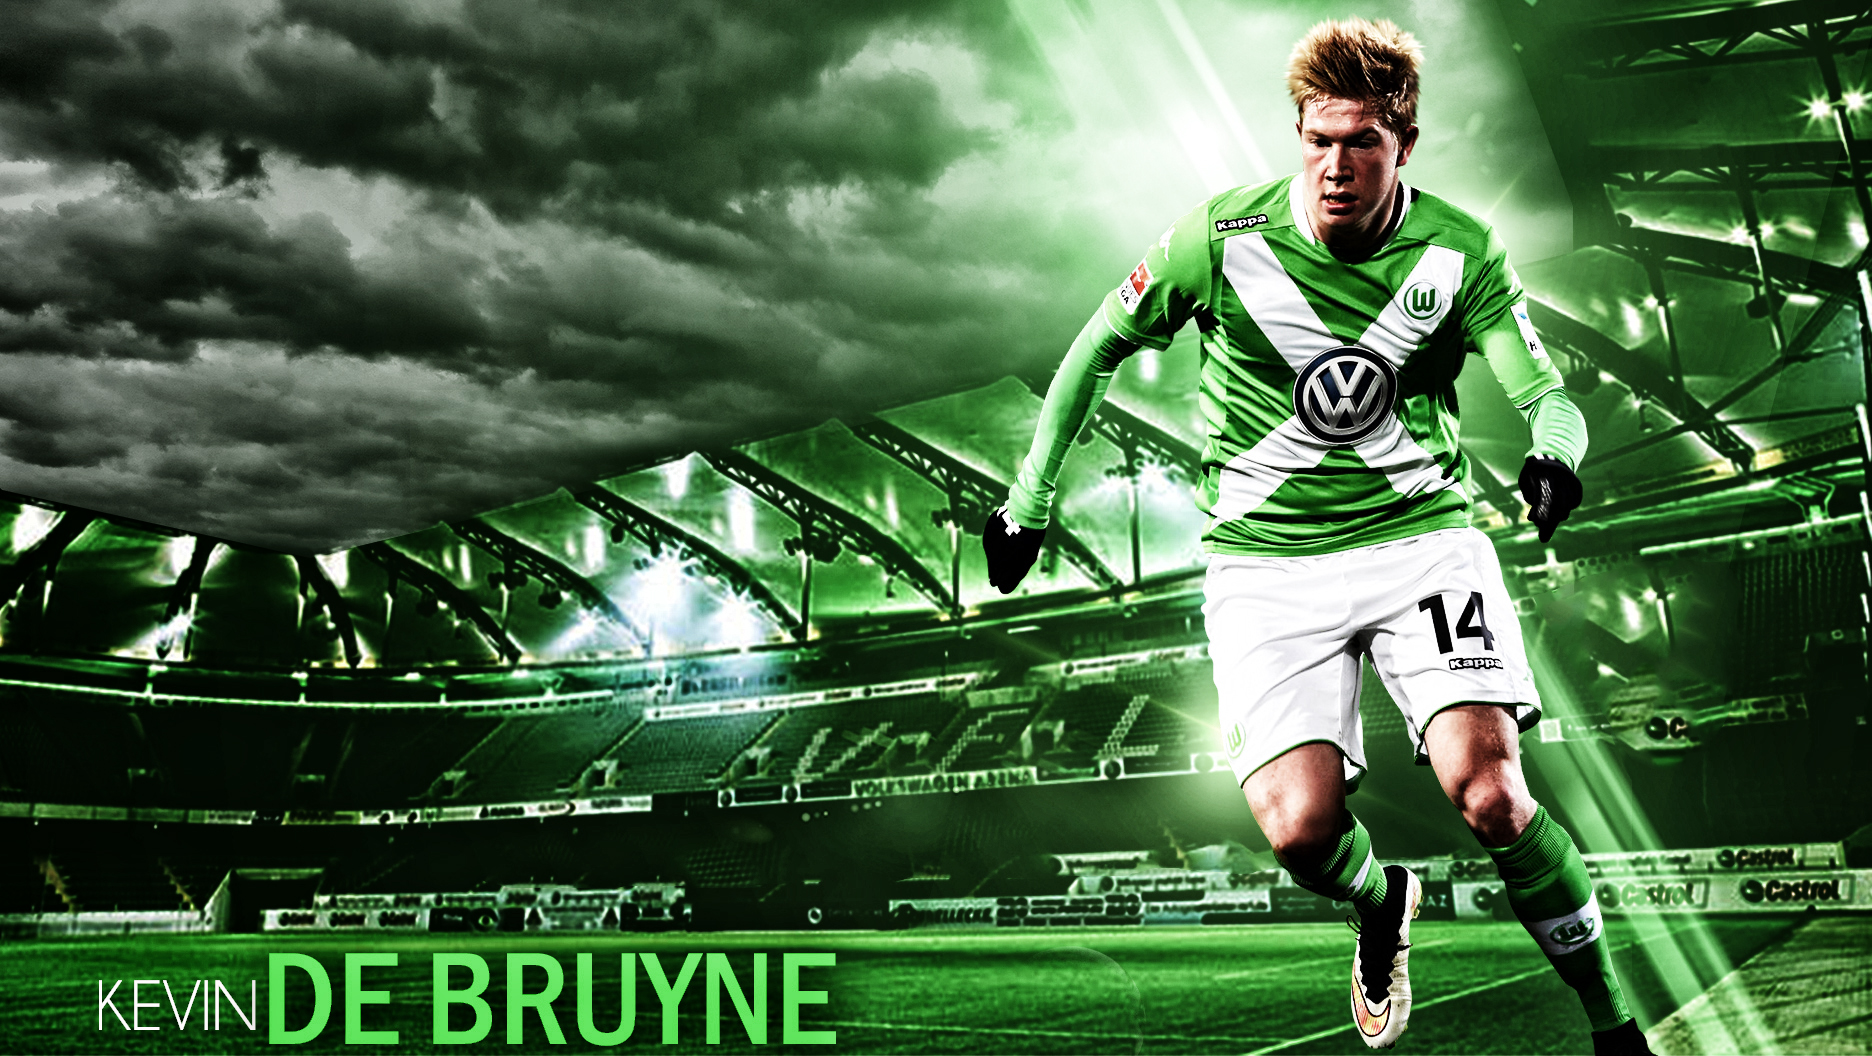 Pictures Of Kevin De Bruyne Wallpaper Kidskunstinfo